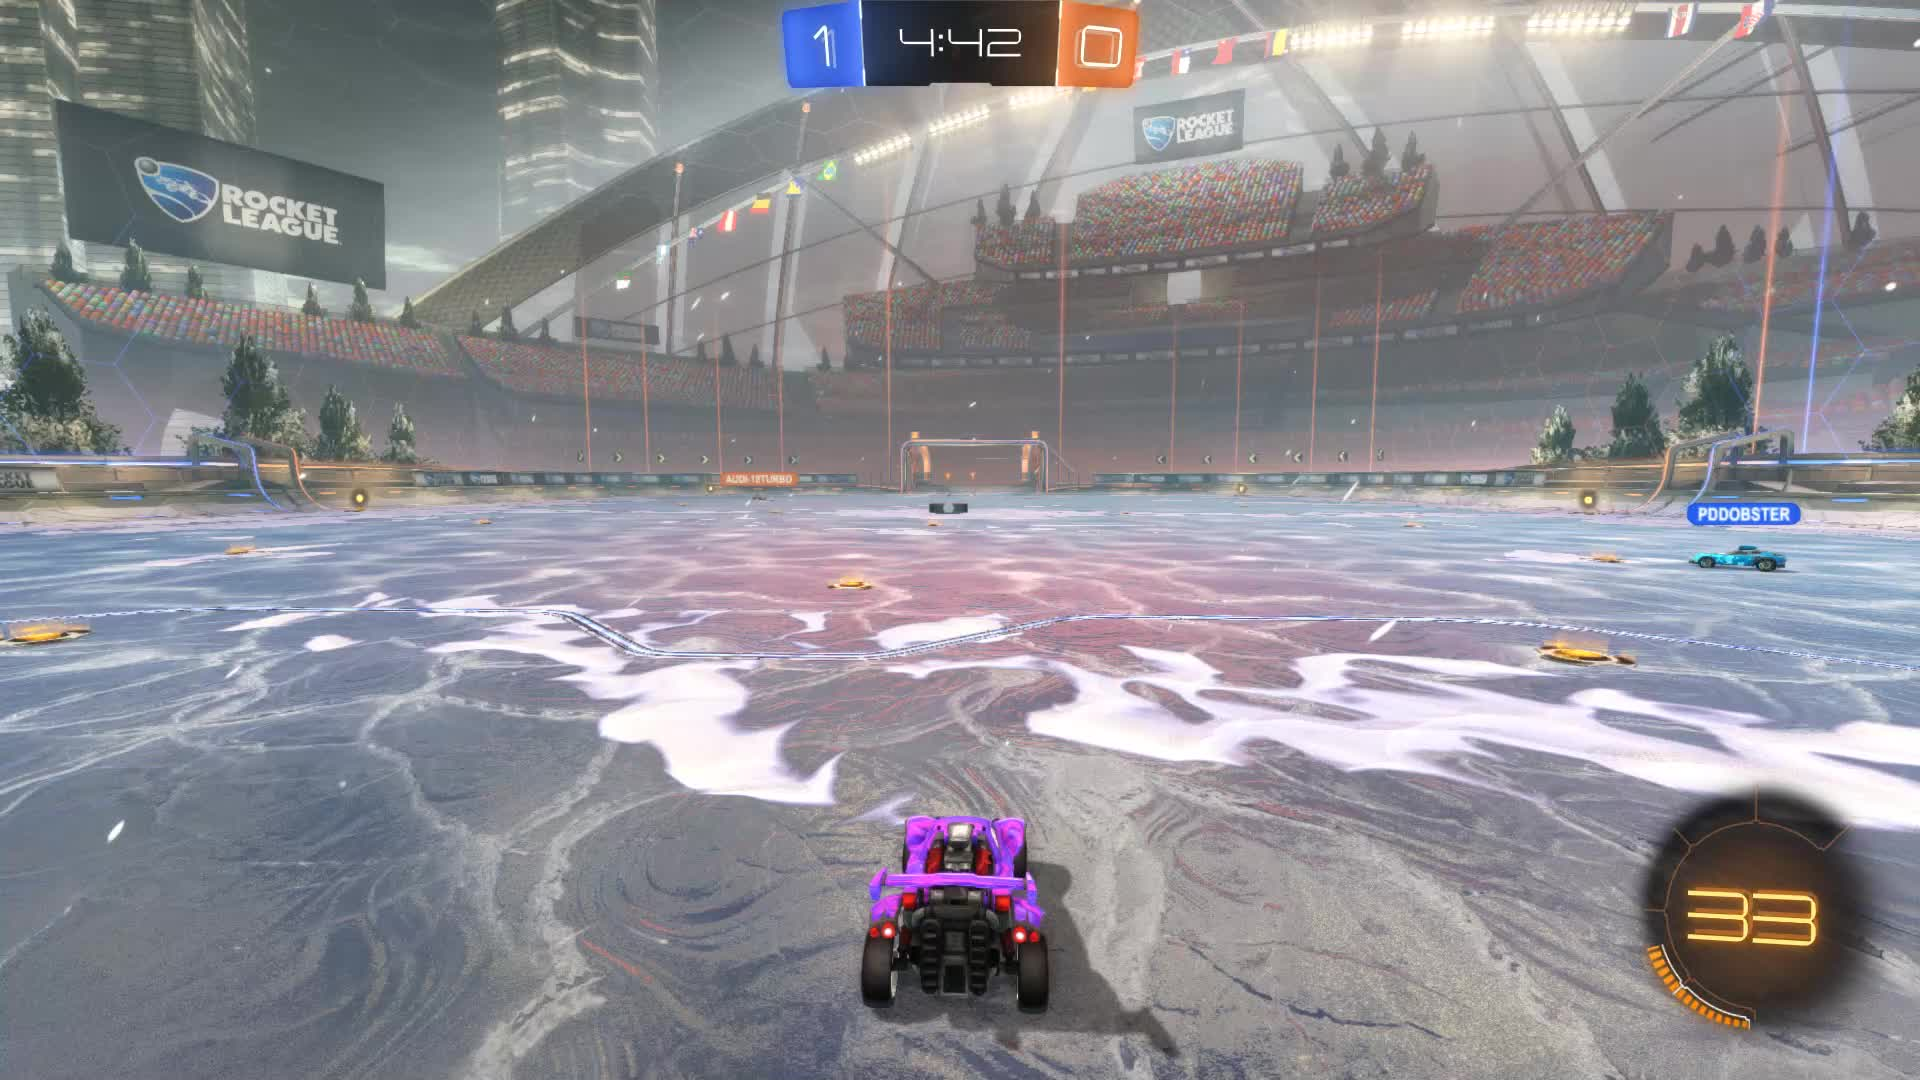 Gif Your Game, GifYourGame, Goal, Rocket League, RocketLeague, Snakes, Goal 2: Snakes GIFs